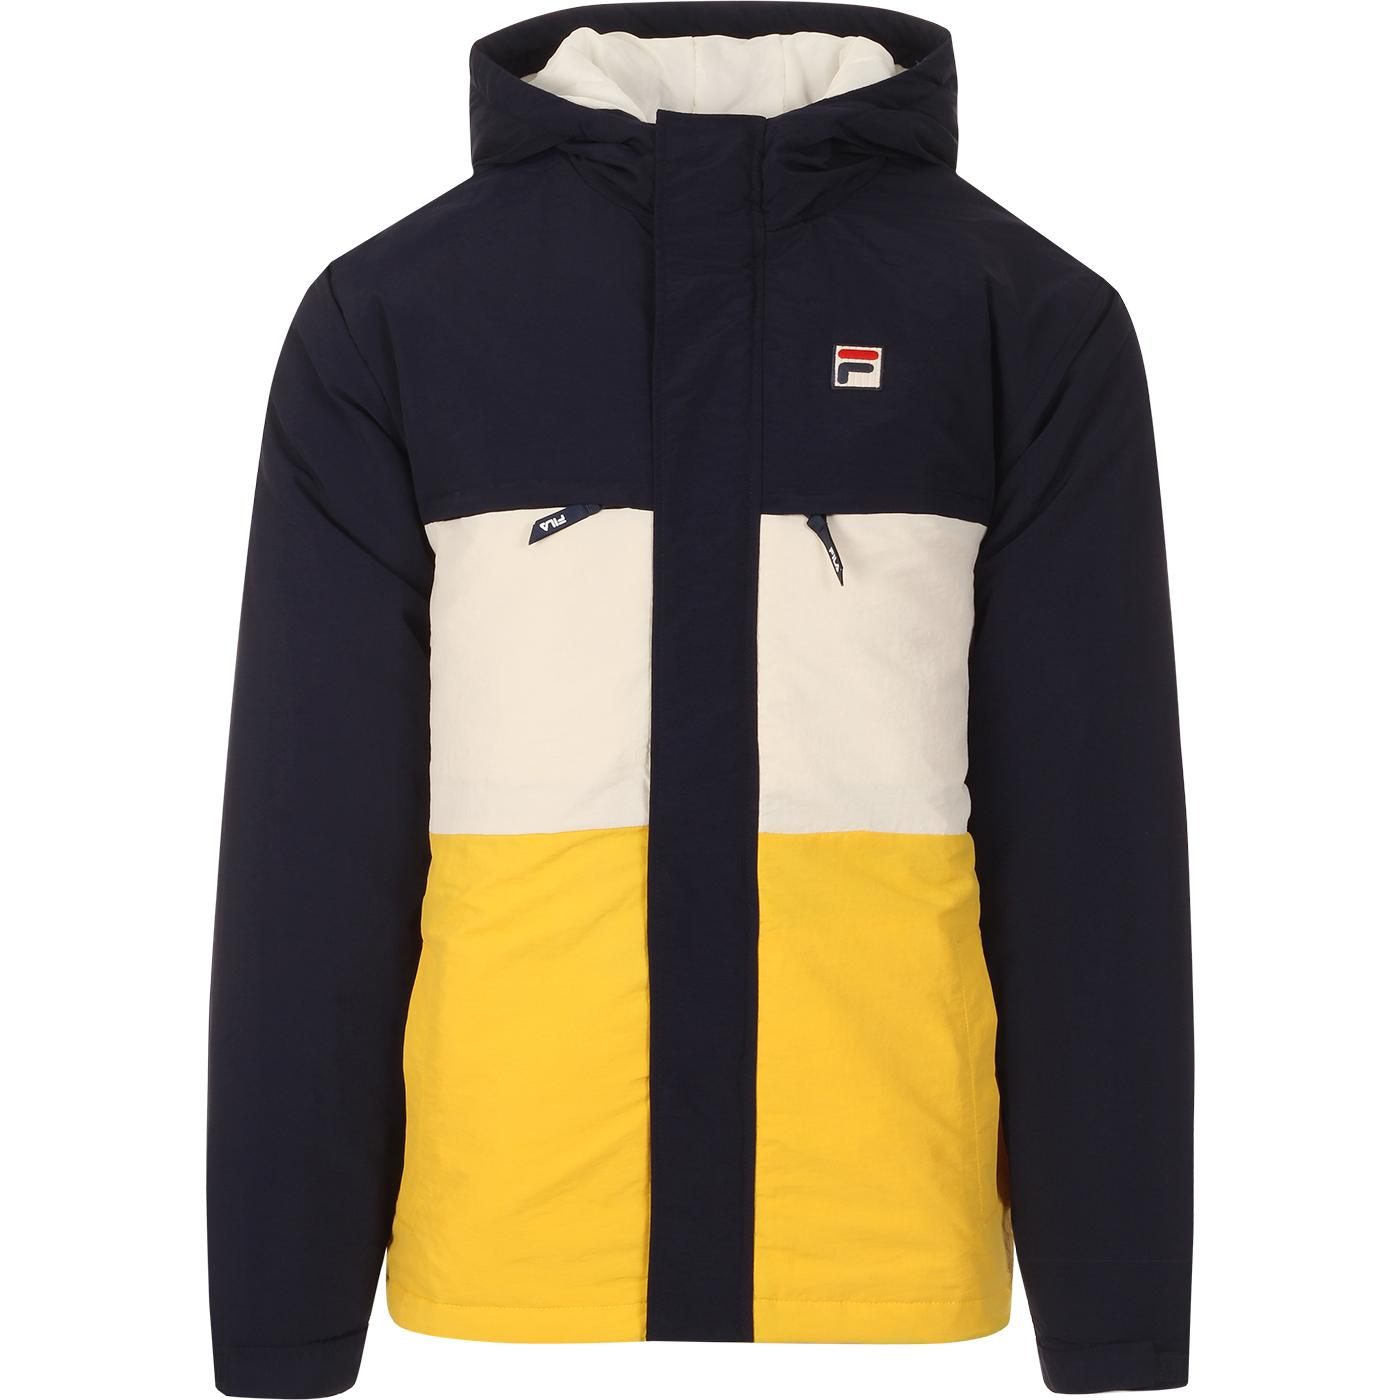 Raul FILA VINTAGE Retro 90s Colour Block Jacket